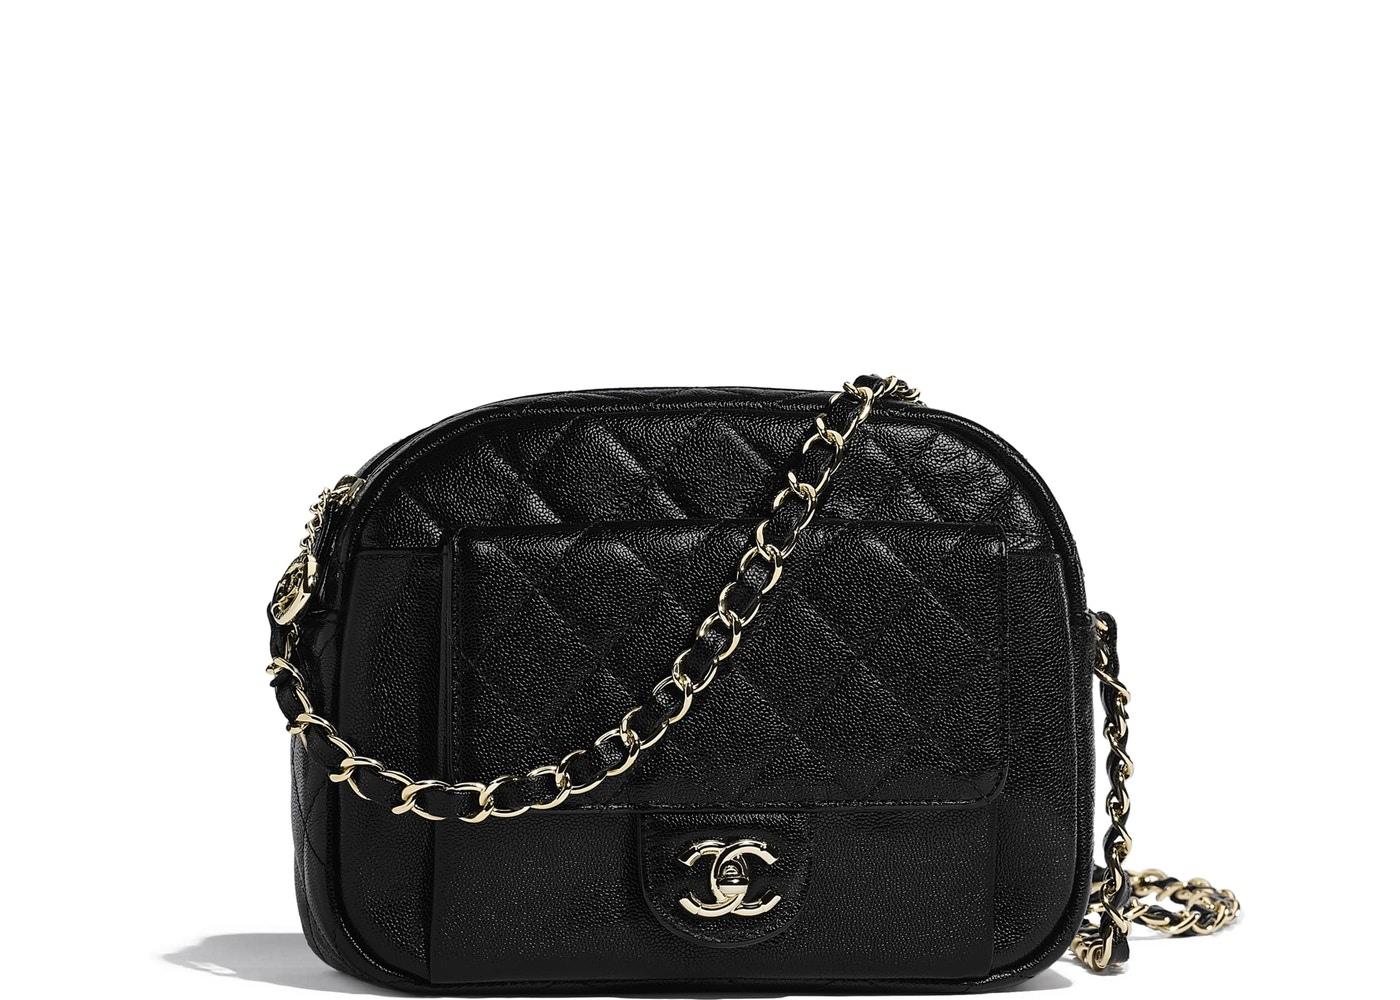 0703370dc2ad Chanel Camera Case Quilted Grained Calfskin Gold-tone Black. Quilted  Grained Calfskin Gold-tone Black